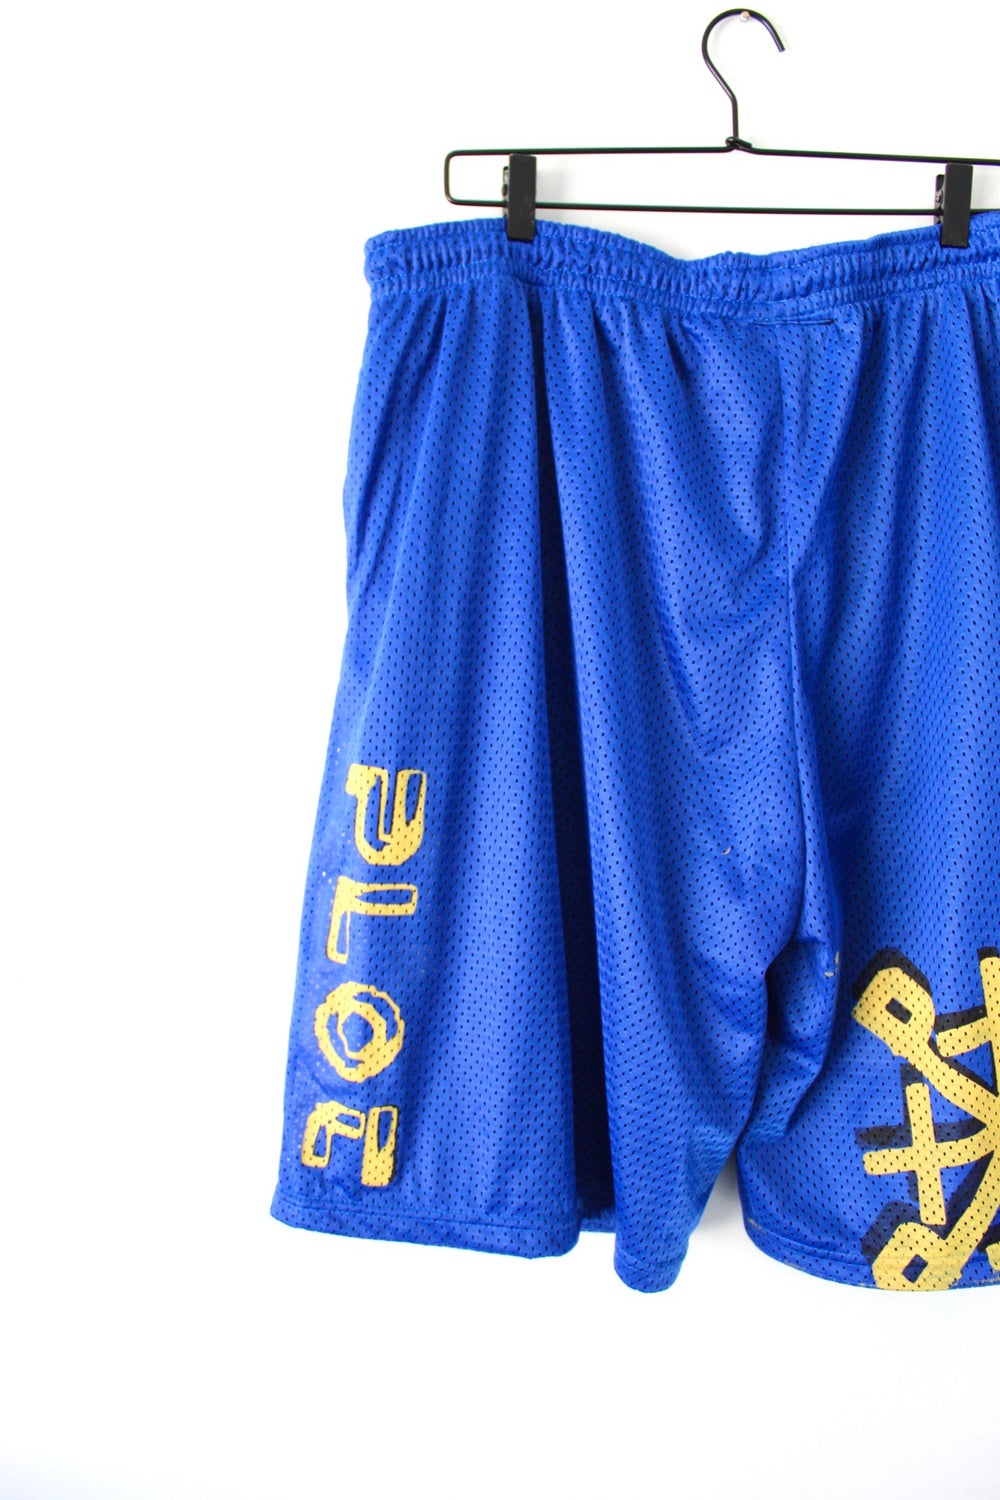 not playing fair bball shorts in blue